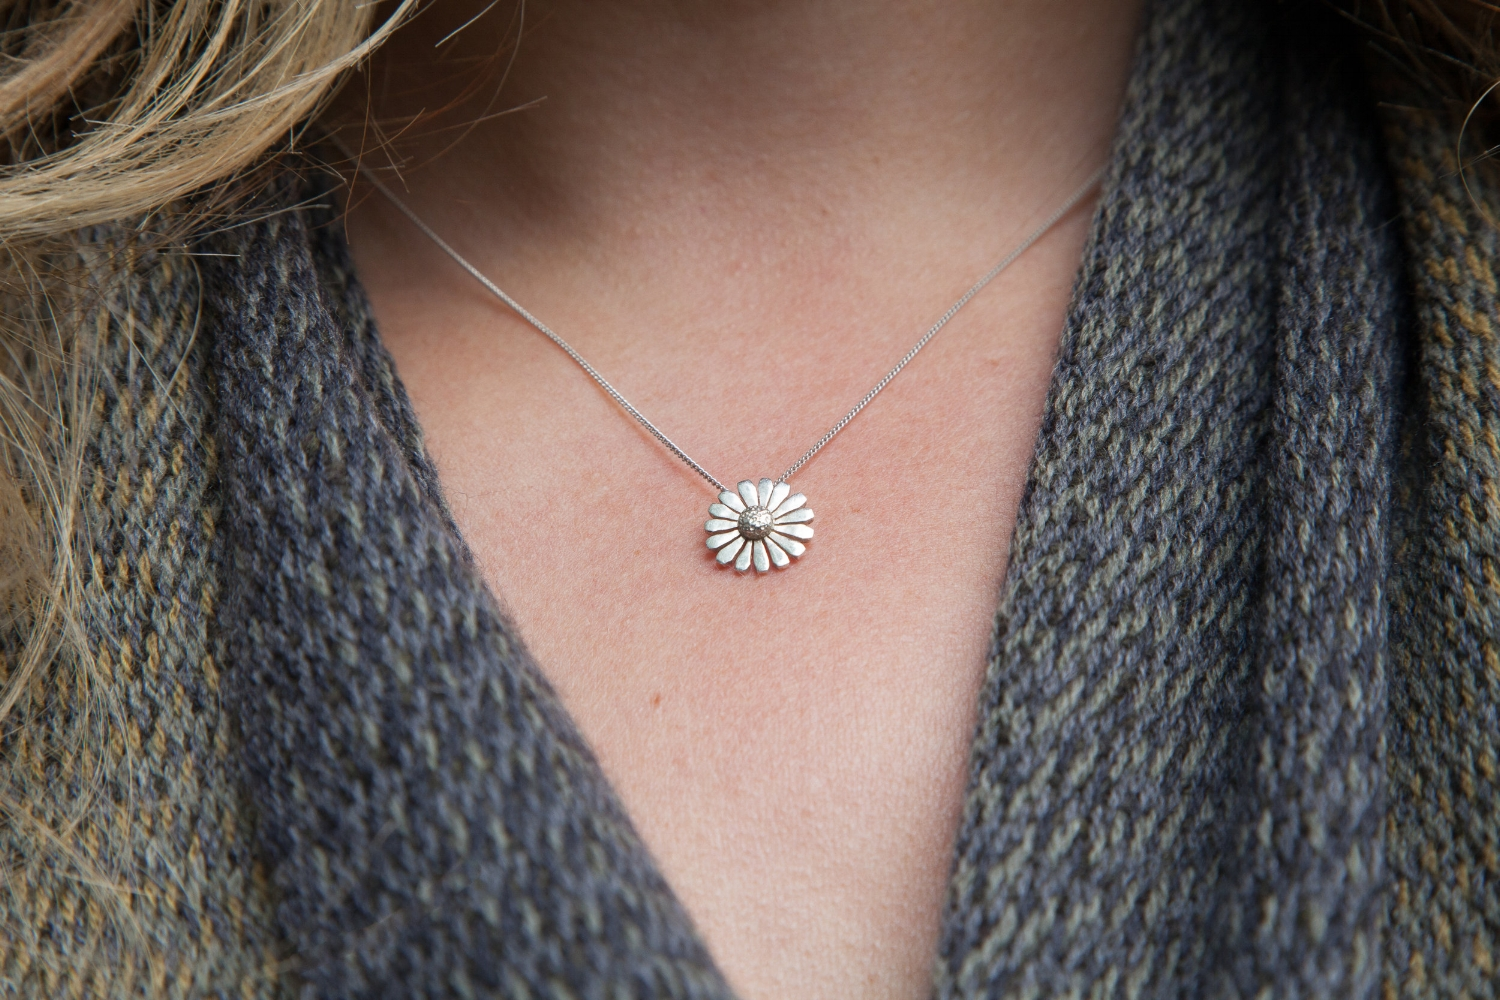 This Goal Daisy Pendant is made from hallmarked sterling silver. All proceeds from the sale of these pendants will go towards the   Goal What on Earth Campaign 2018.